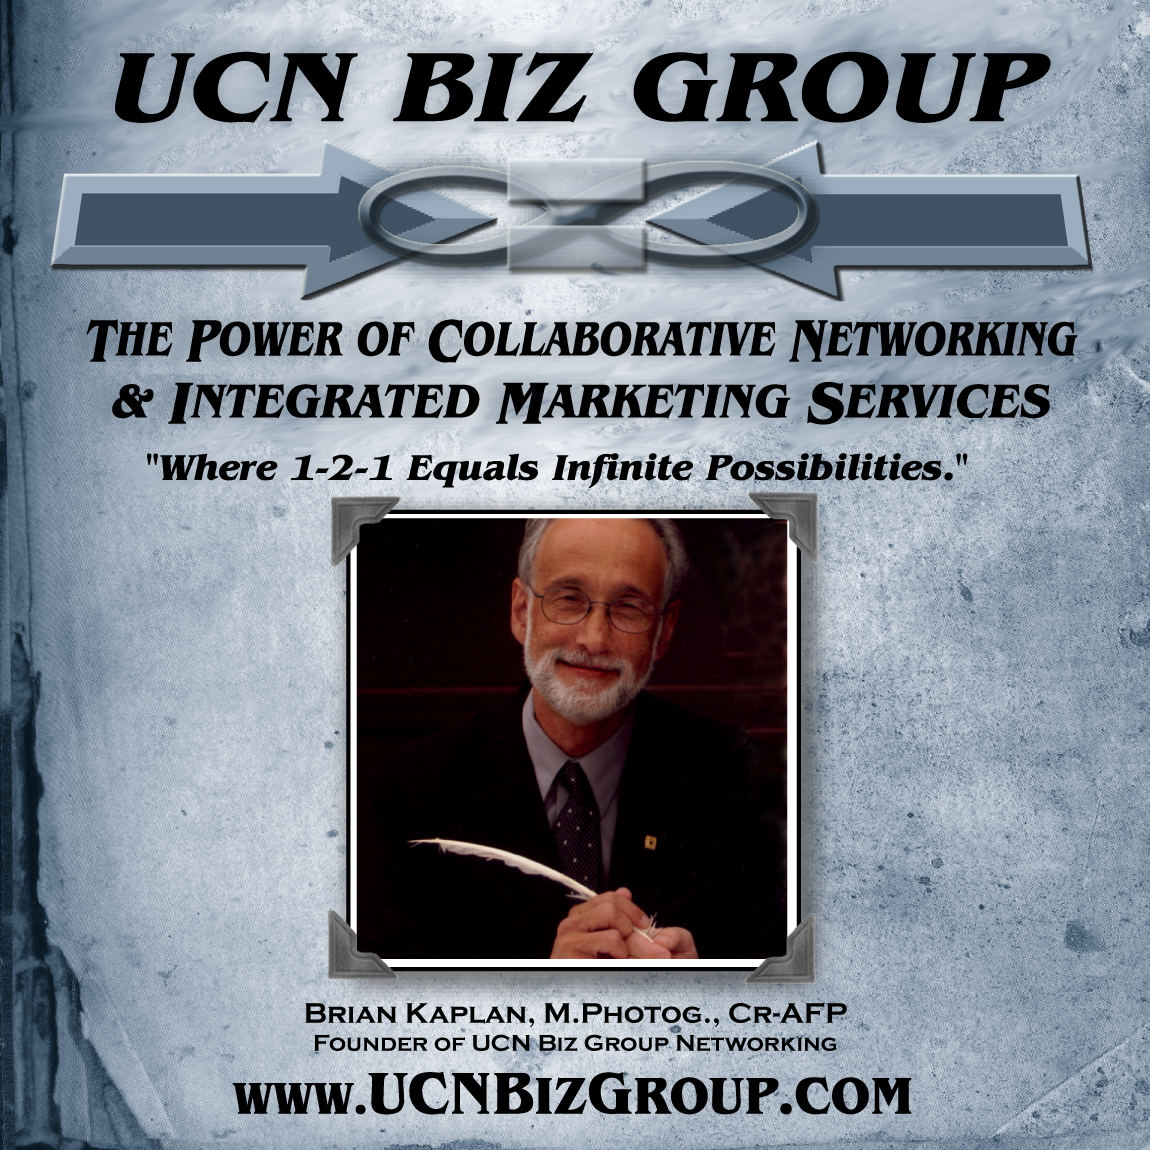 Welcome to UCN Biz Group Marketing